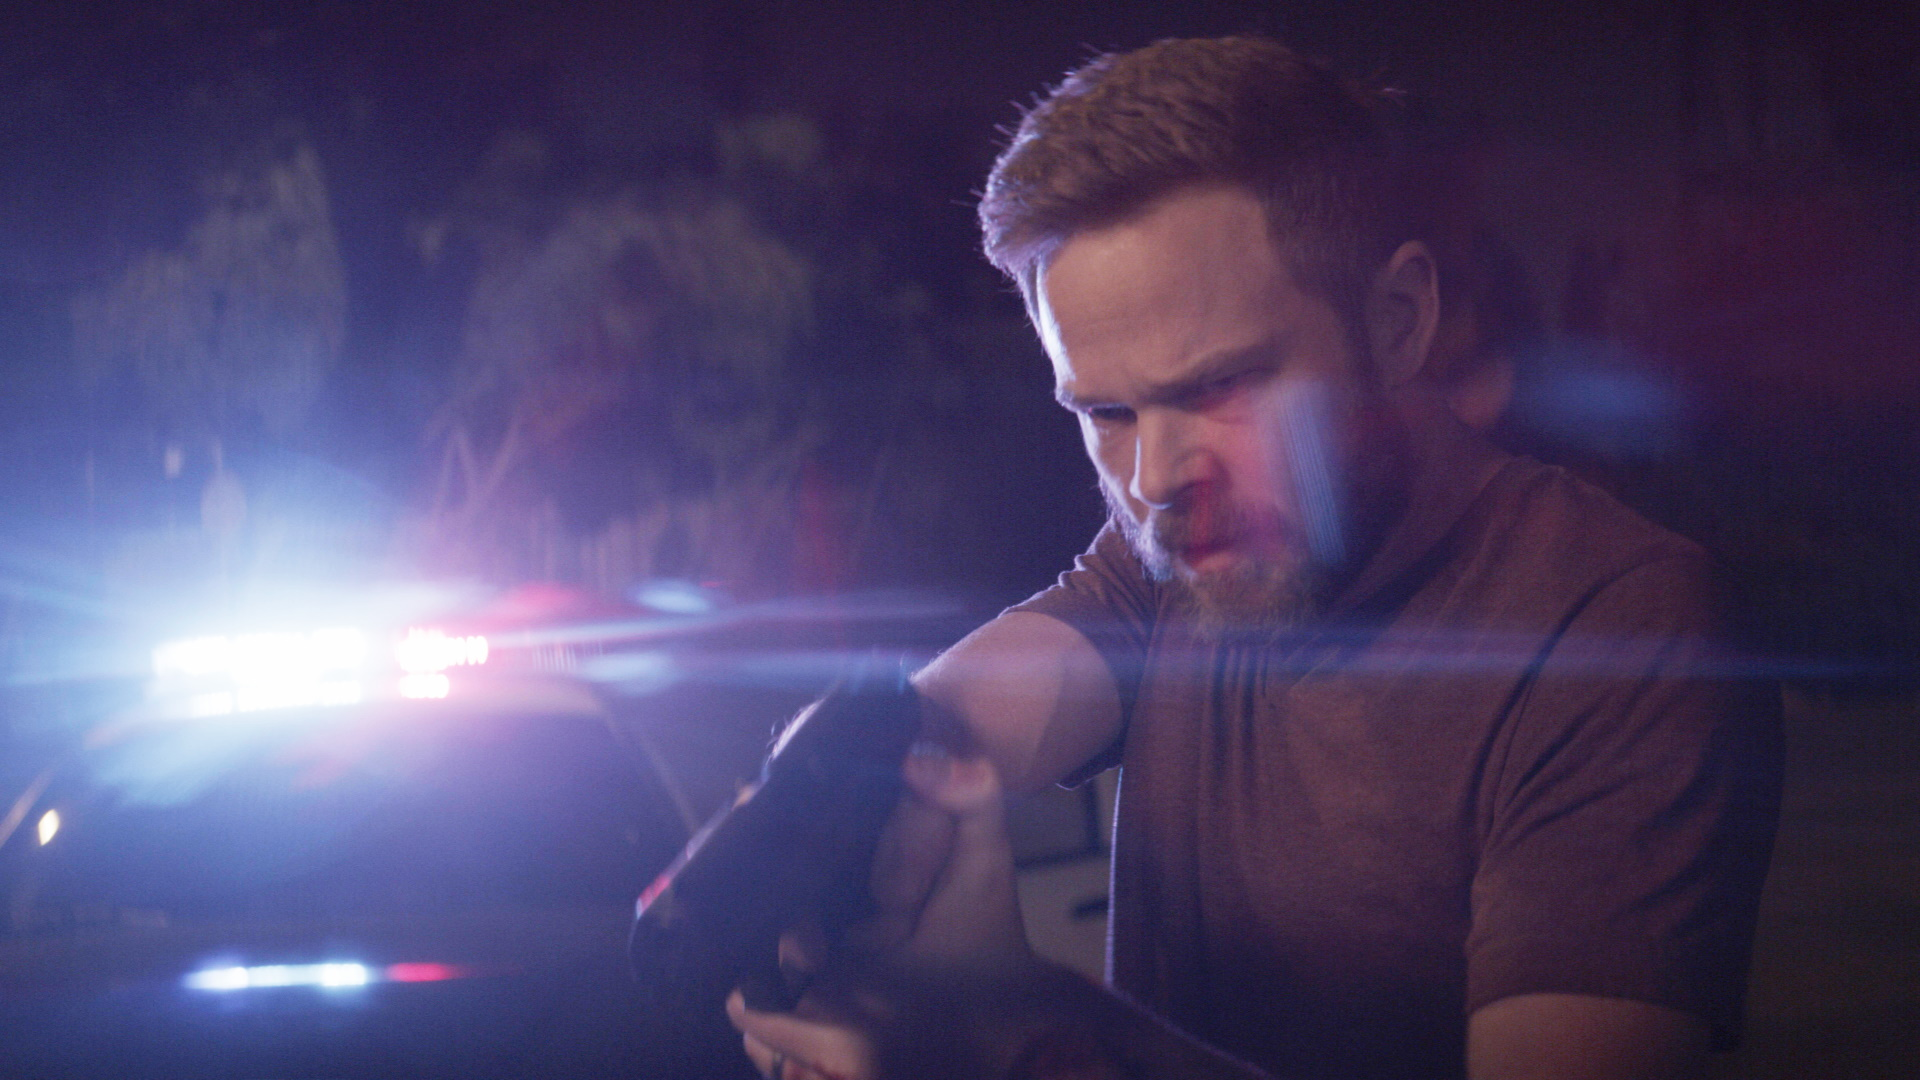 Shawn Ashmore in Darkness Falls (2020)